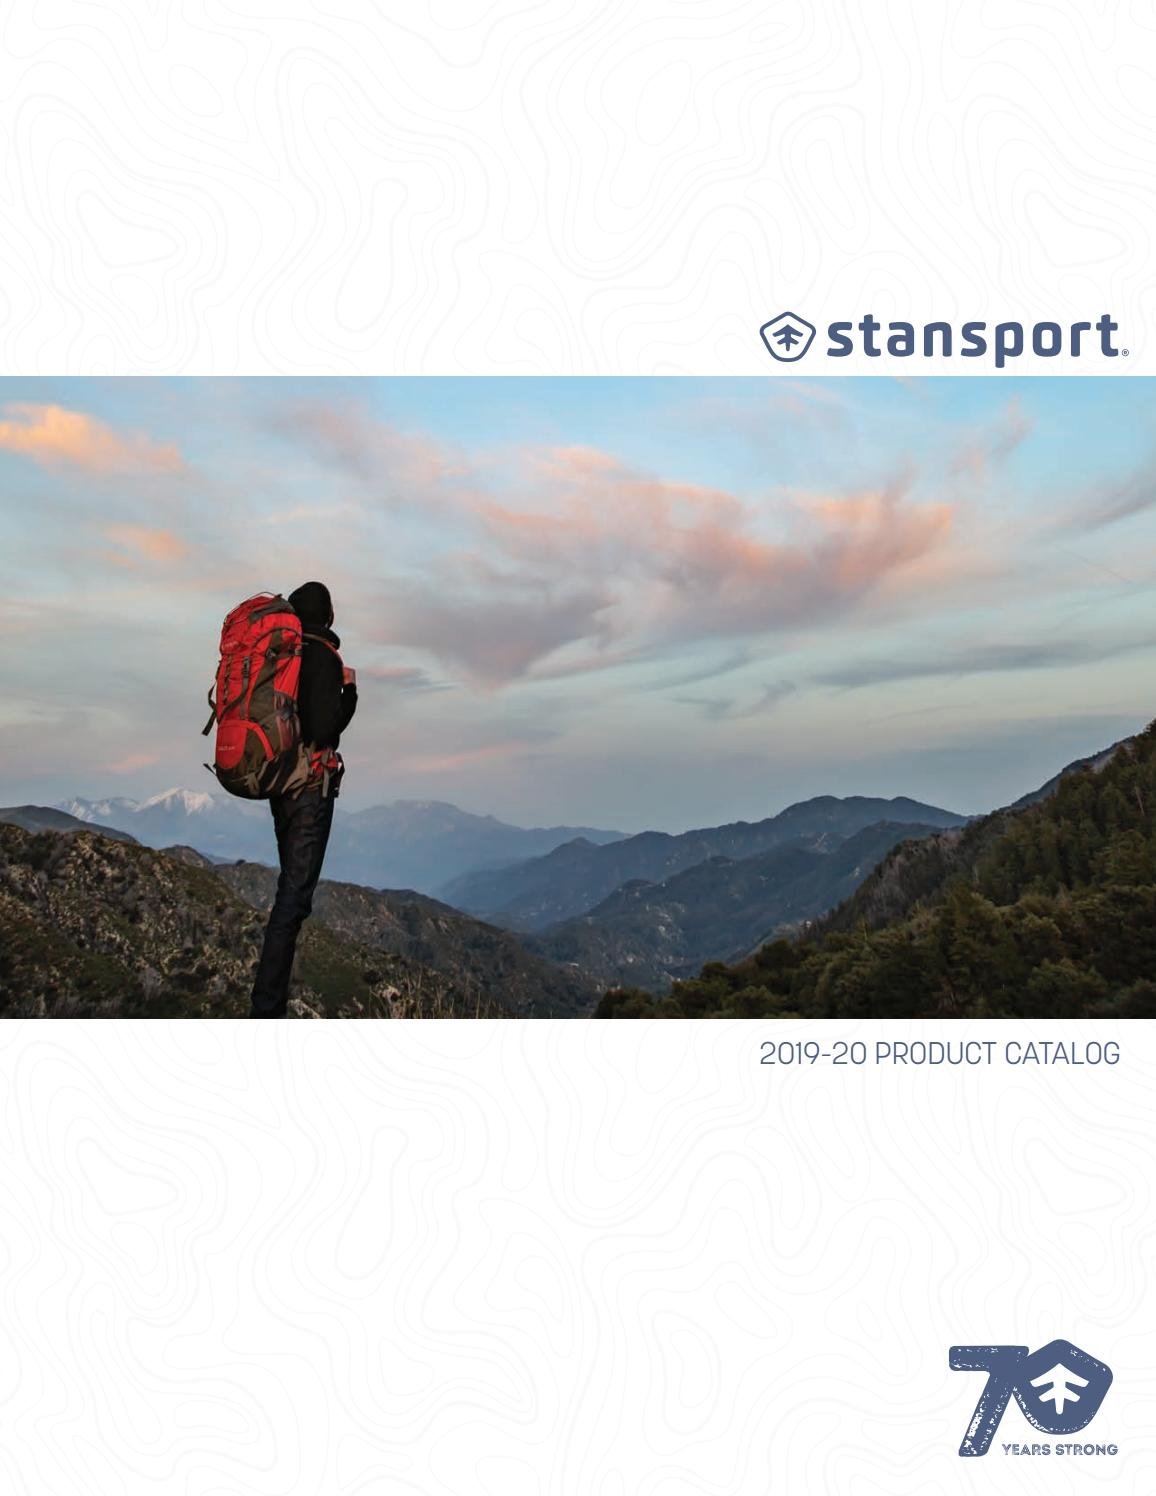 Stansport Catalog 2019 20 By Stansport Issuu